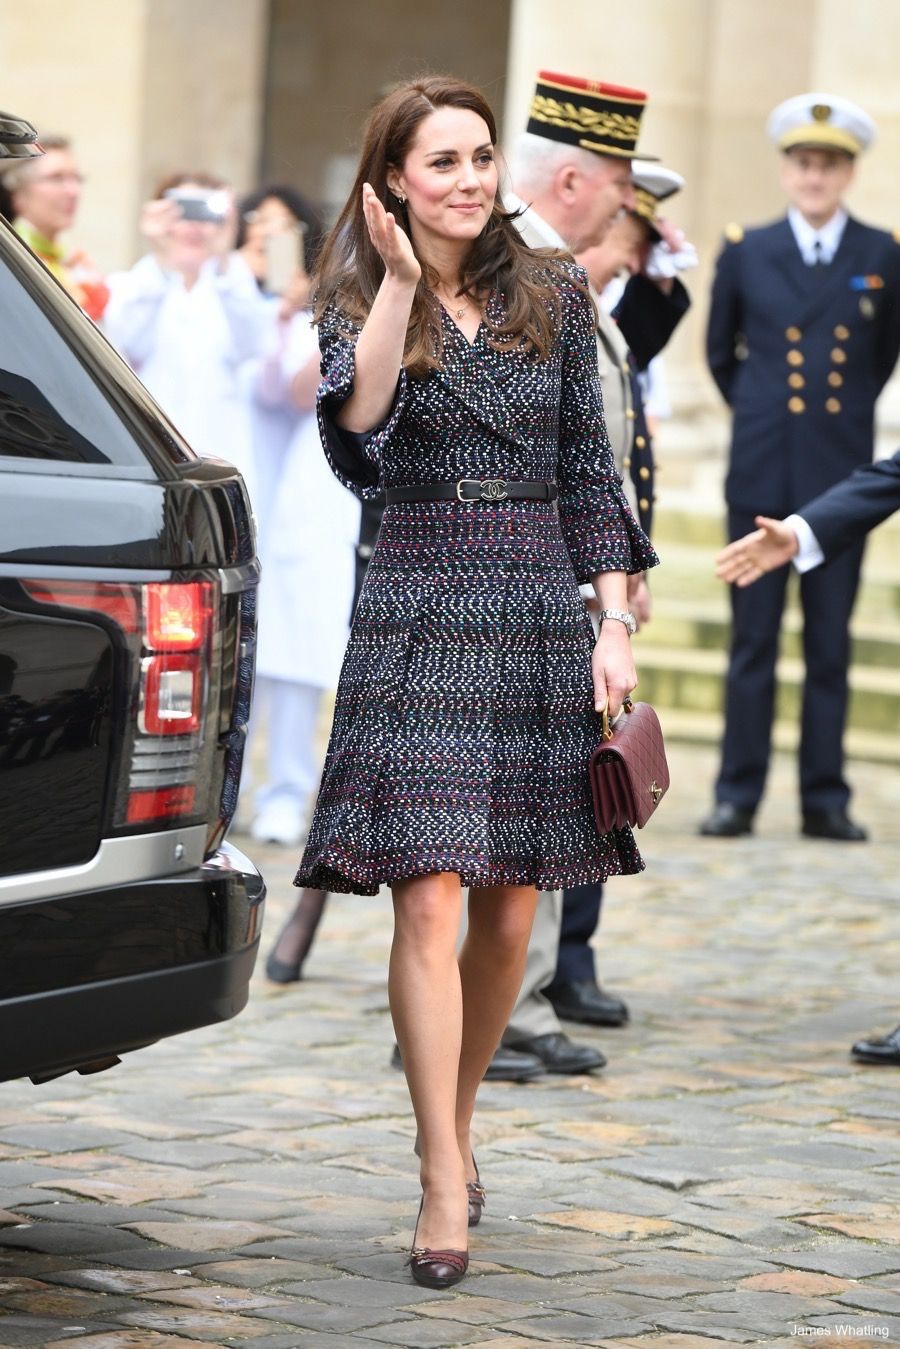 Discussion on this topic: Kate Middleton Wears a Chic Gray Coat , kate-middleton-wears-a-chic-gray-coat/